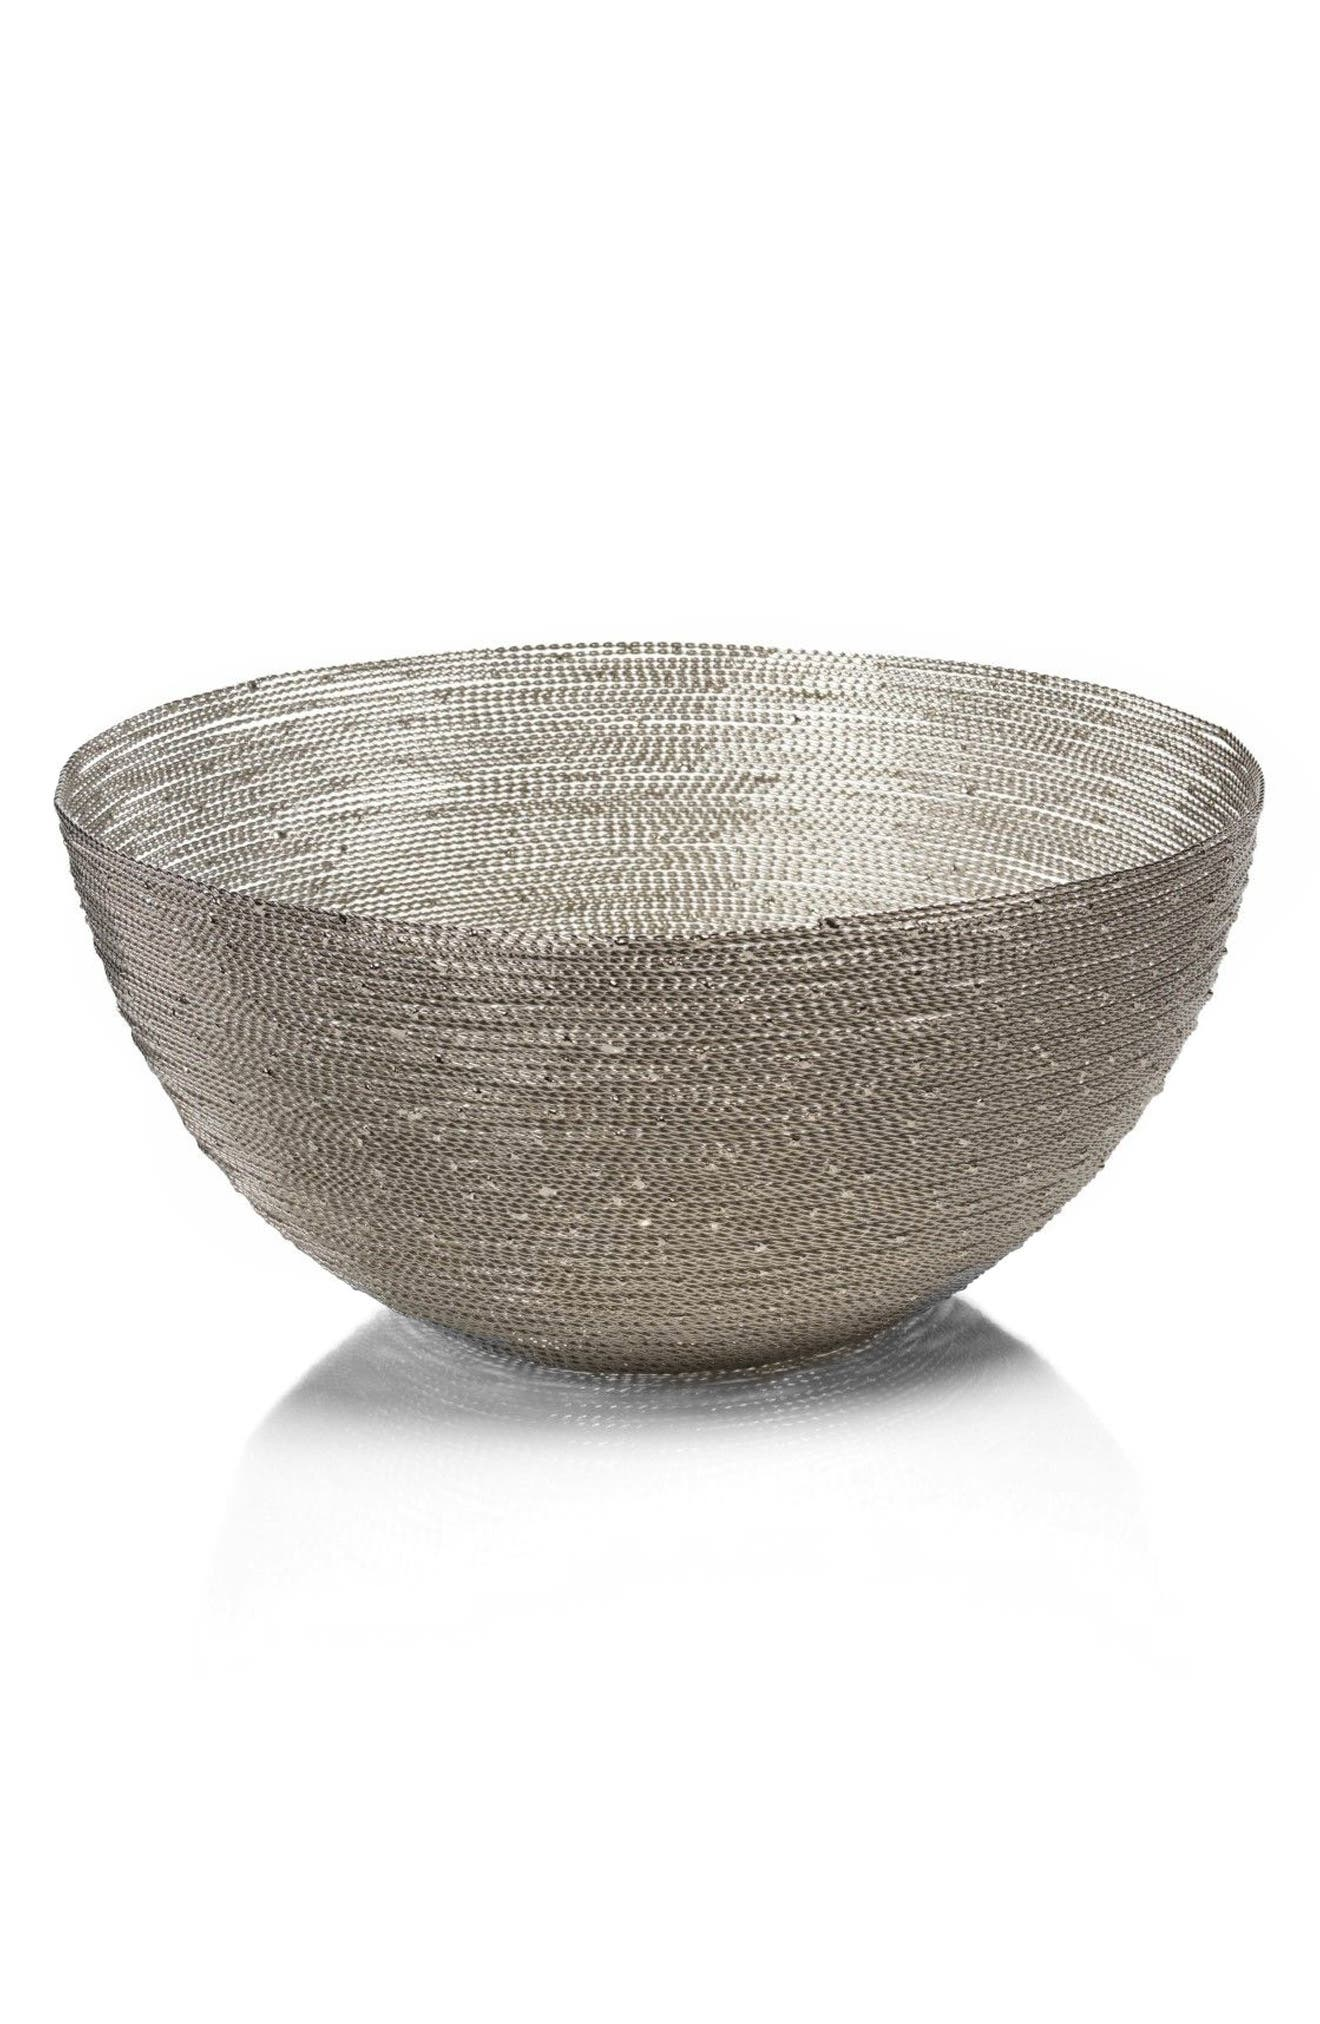 Zulu Round Woven Wire Basket,                             Main thumbnail 1, color,                             040